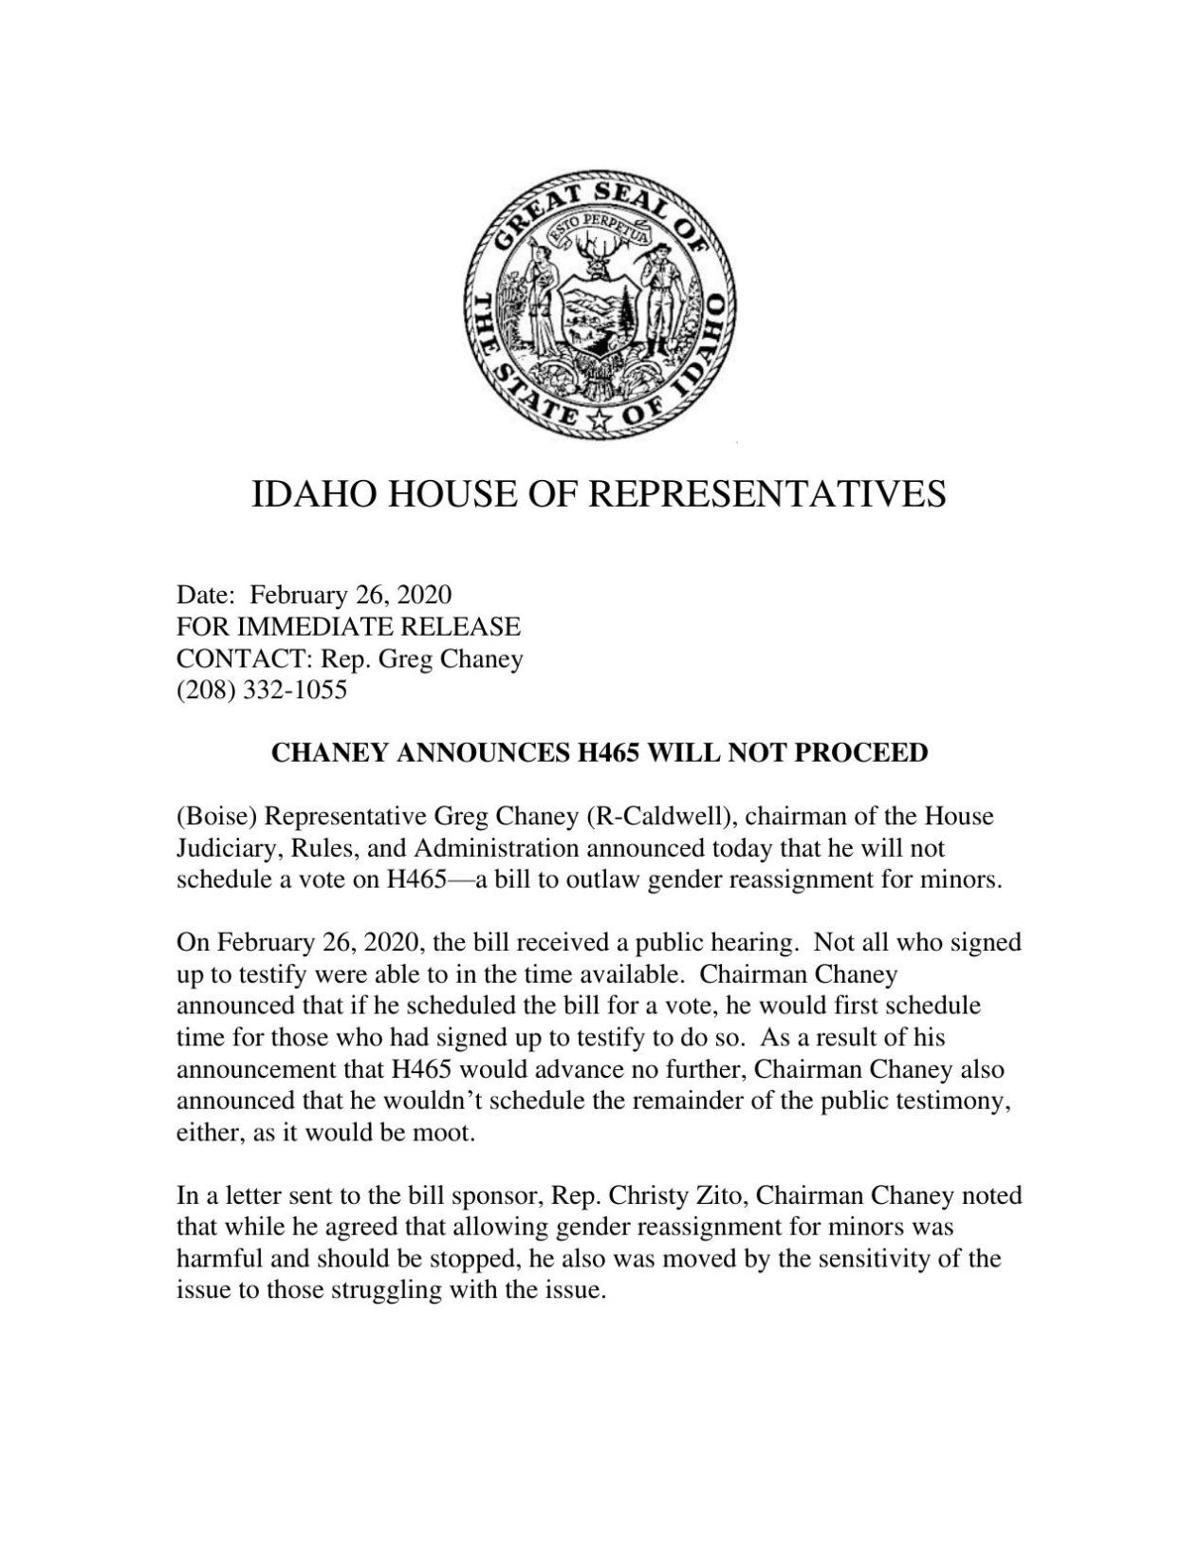 Chaney press release